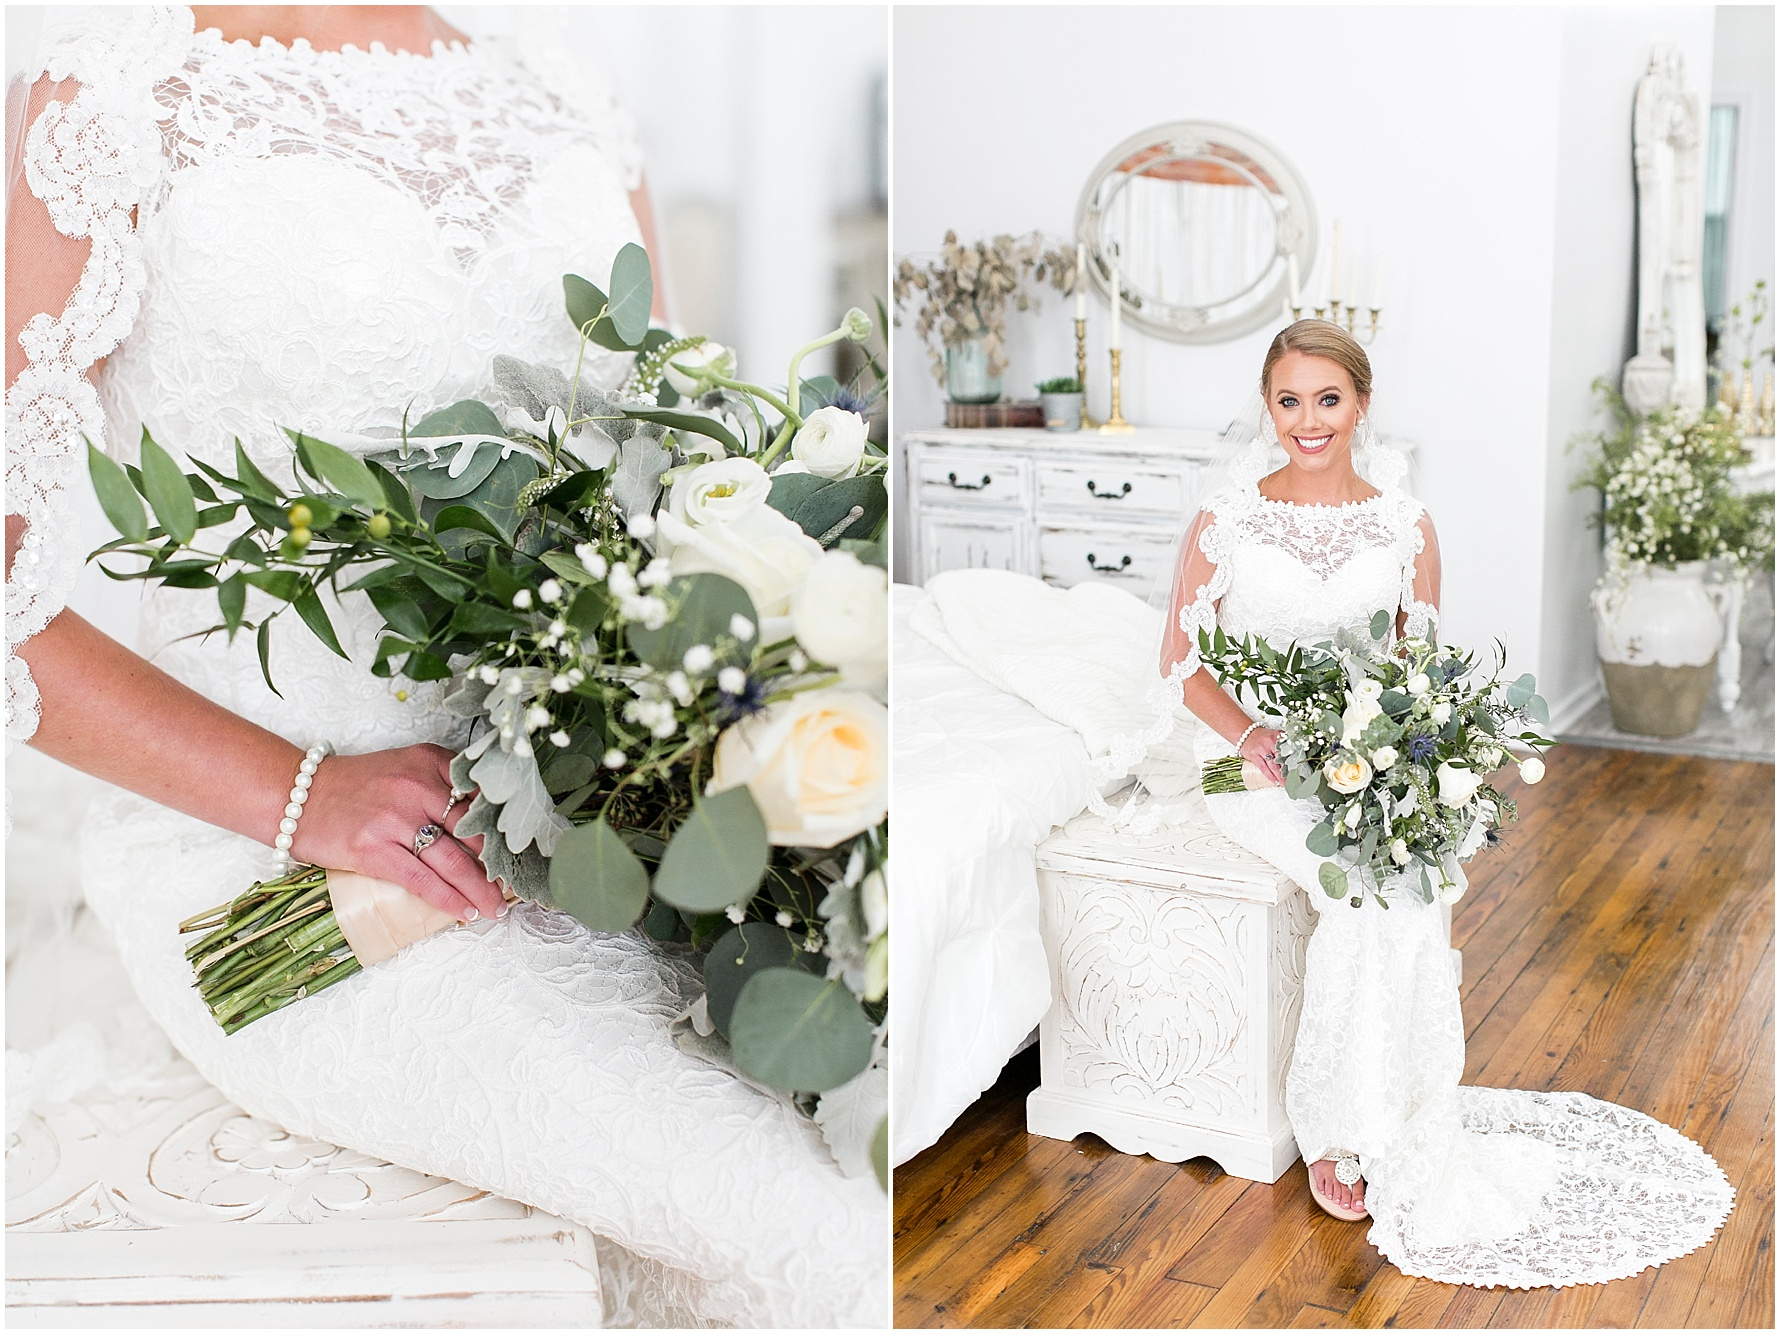 studio at wharf hill bridal portrait, Jessica Ryan photography, Mann and wife florist